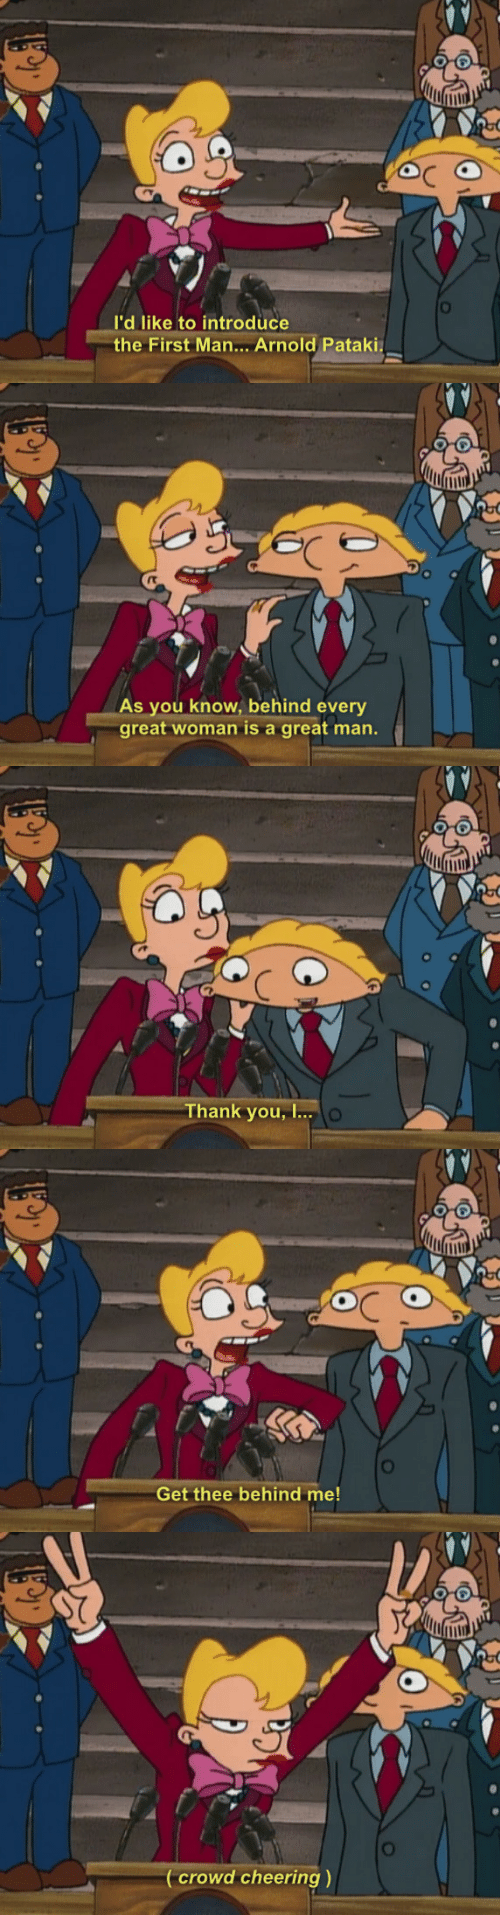 crowd cheering: l'd like to introduce  the First Man... Arnold Pataki.   As you know, behind every  great woman is a great man.   Thank you, I...O   0O  Get thee behind me!   0O  ( crowd cheering)